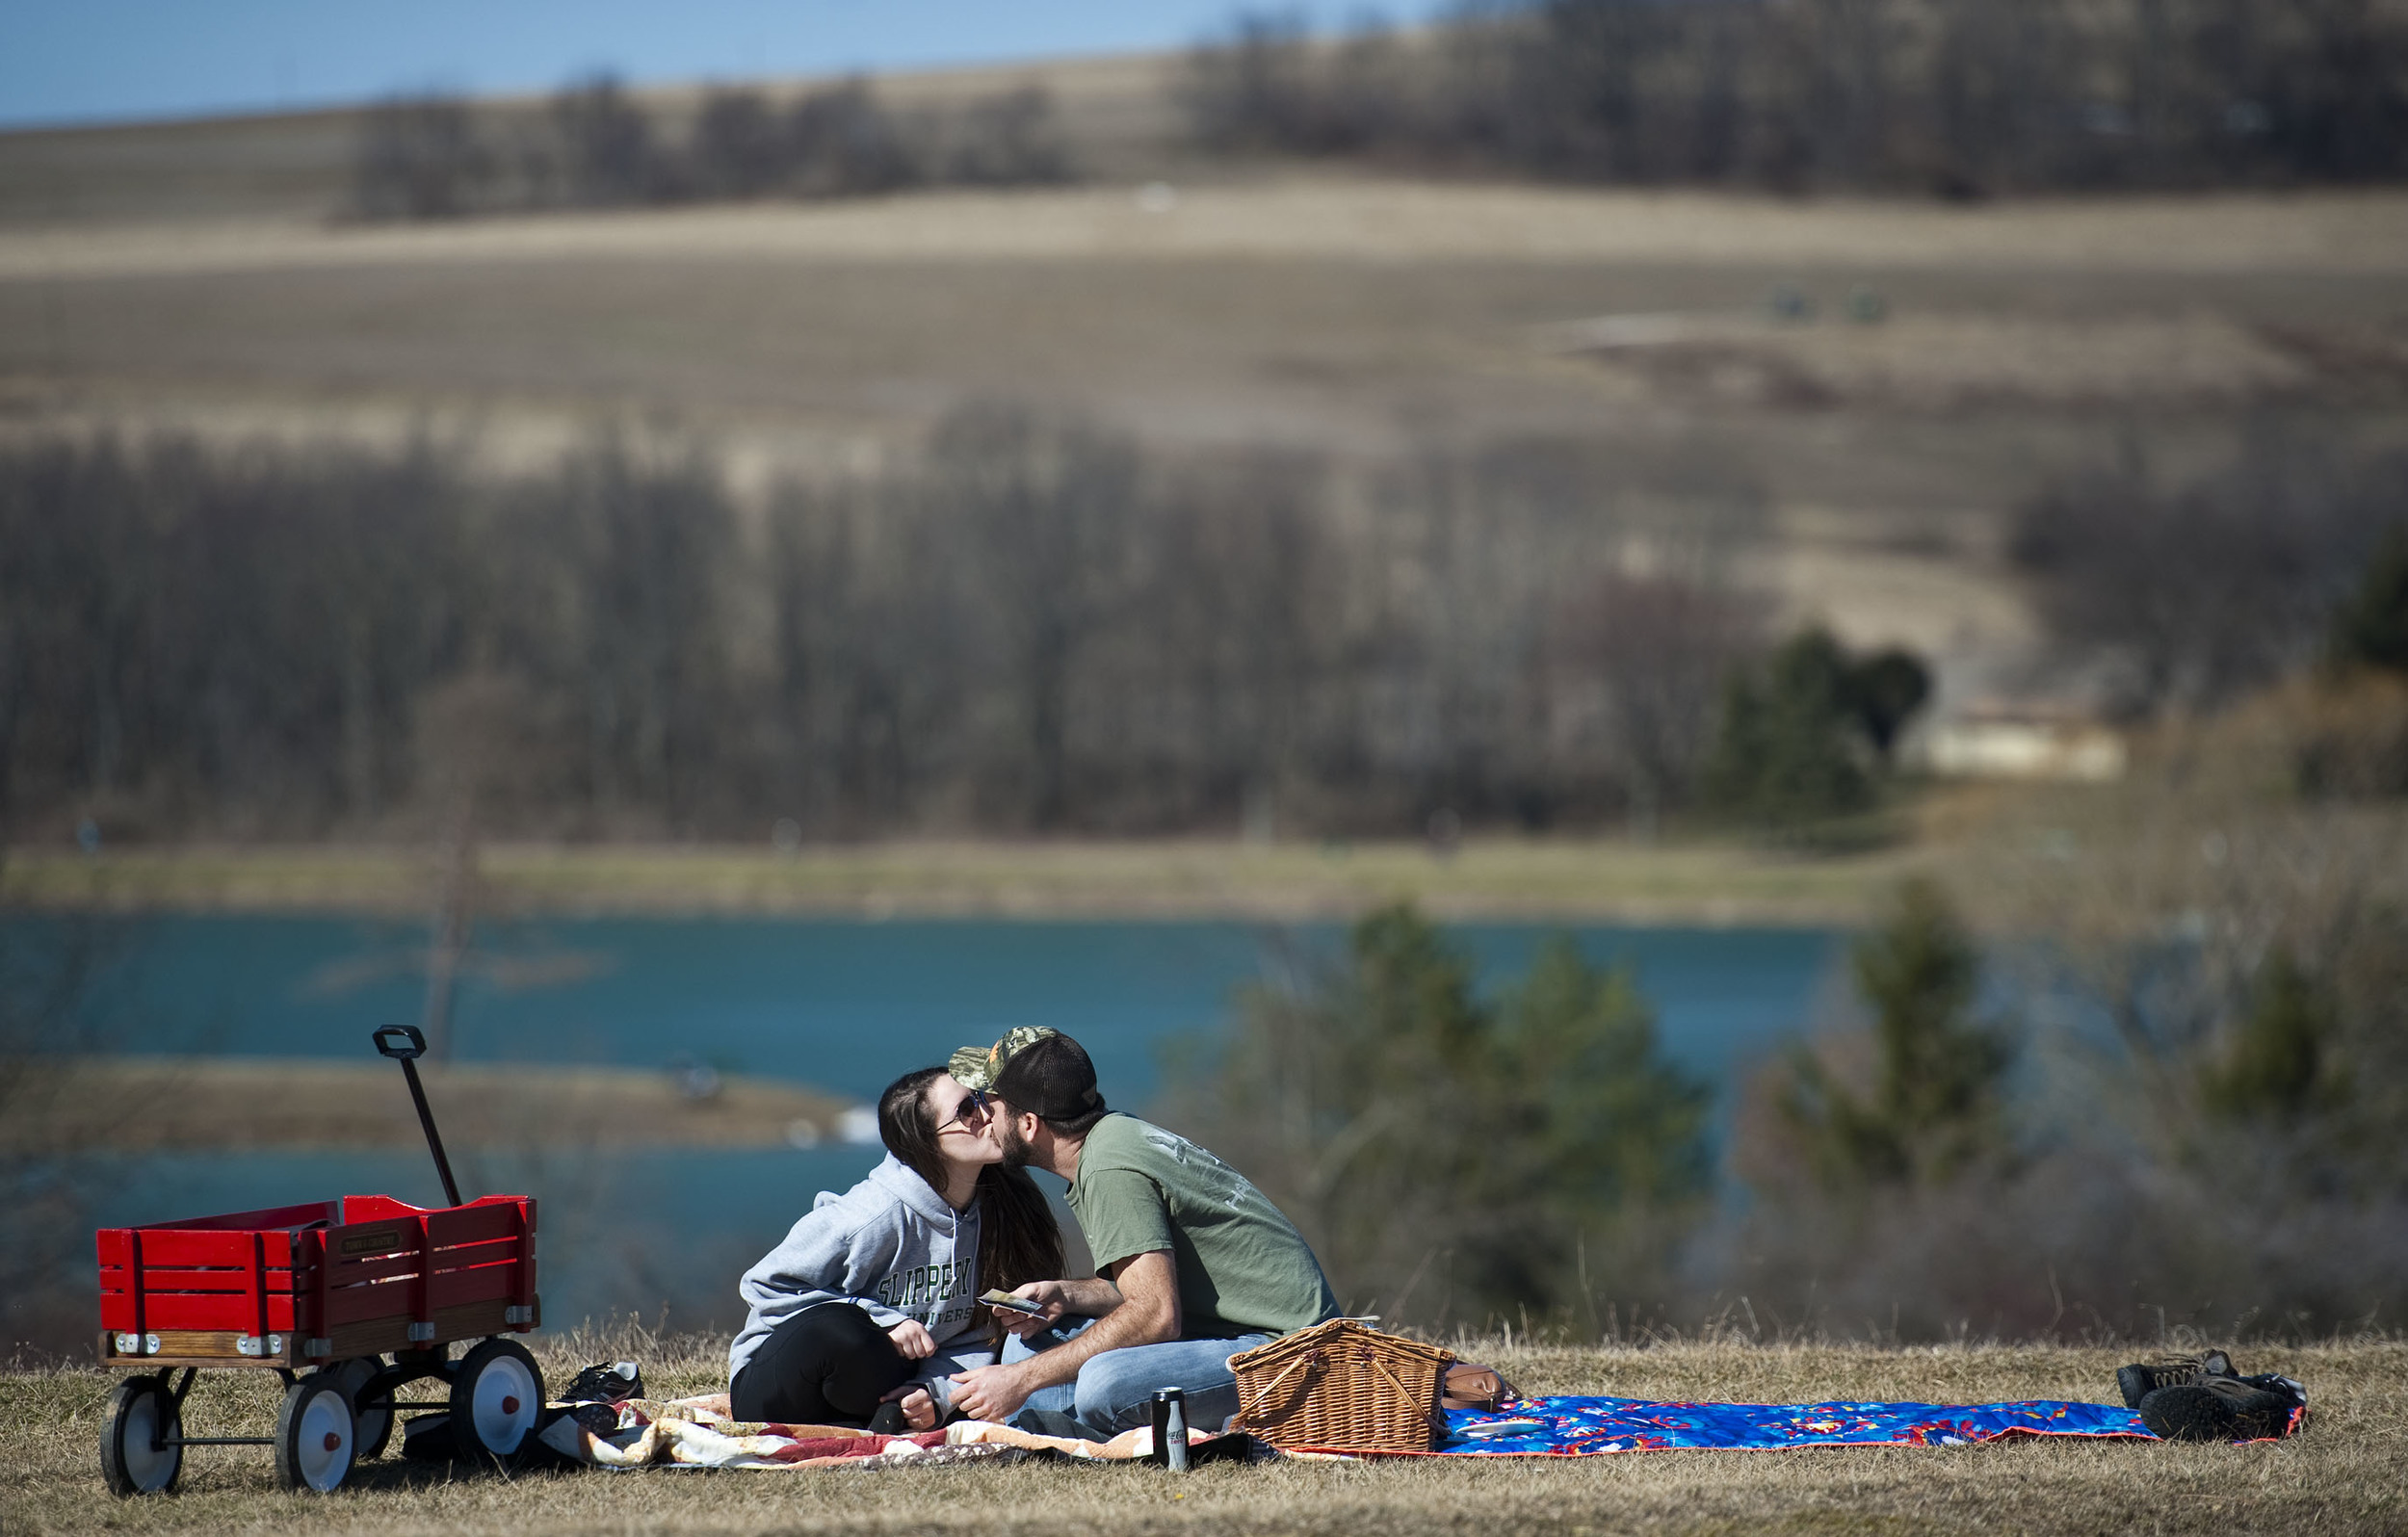 Abby Wirth kisses her boyfriend Shane Ostrosky after Ostrosky scratched off a lottery ticket worth $50 while the couple enjoys a picnic in the 60-degree weather on Saturday, Feb. 20, 2016 at Mammoth Park near Mt. Pleasant.